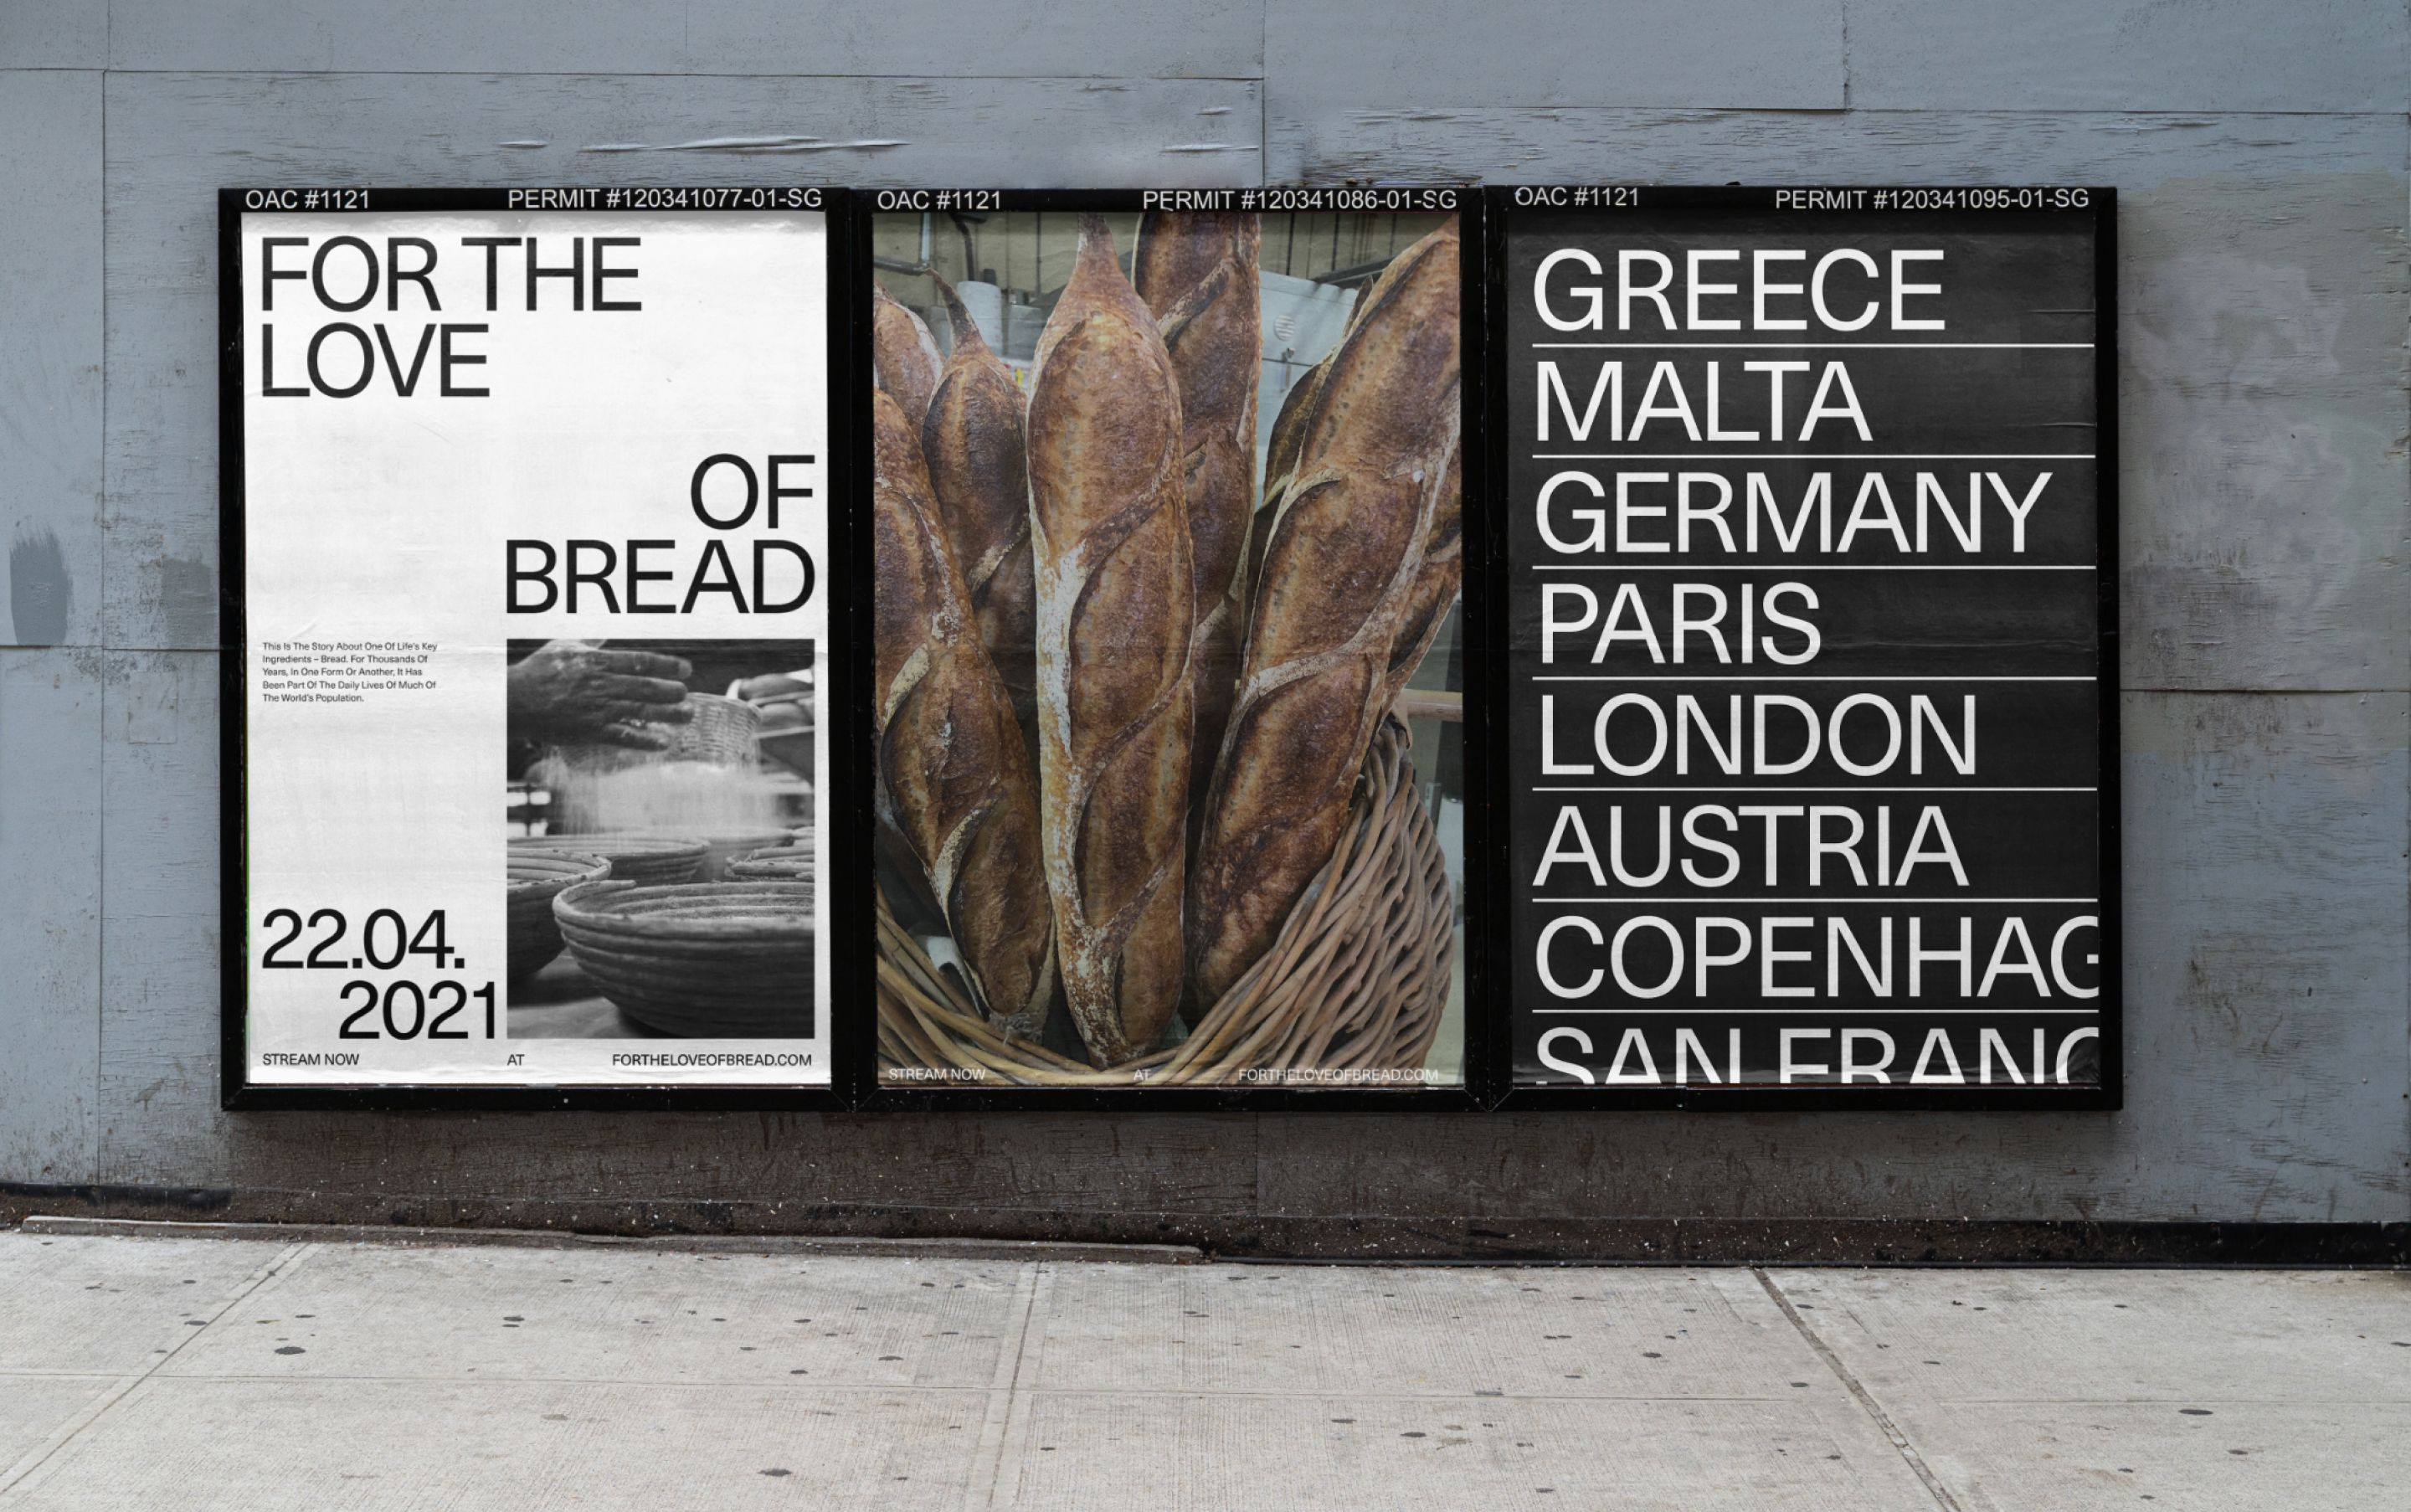 3 For The Love Of Bread posters in a row